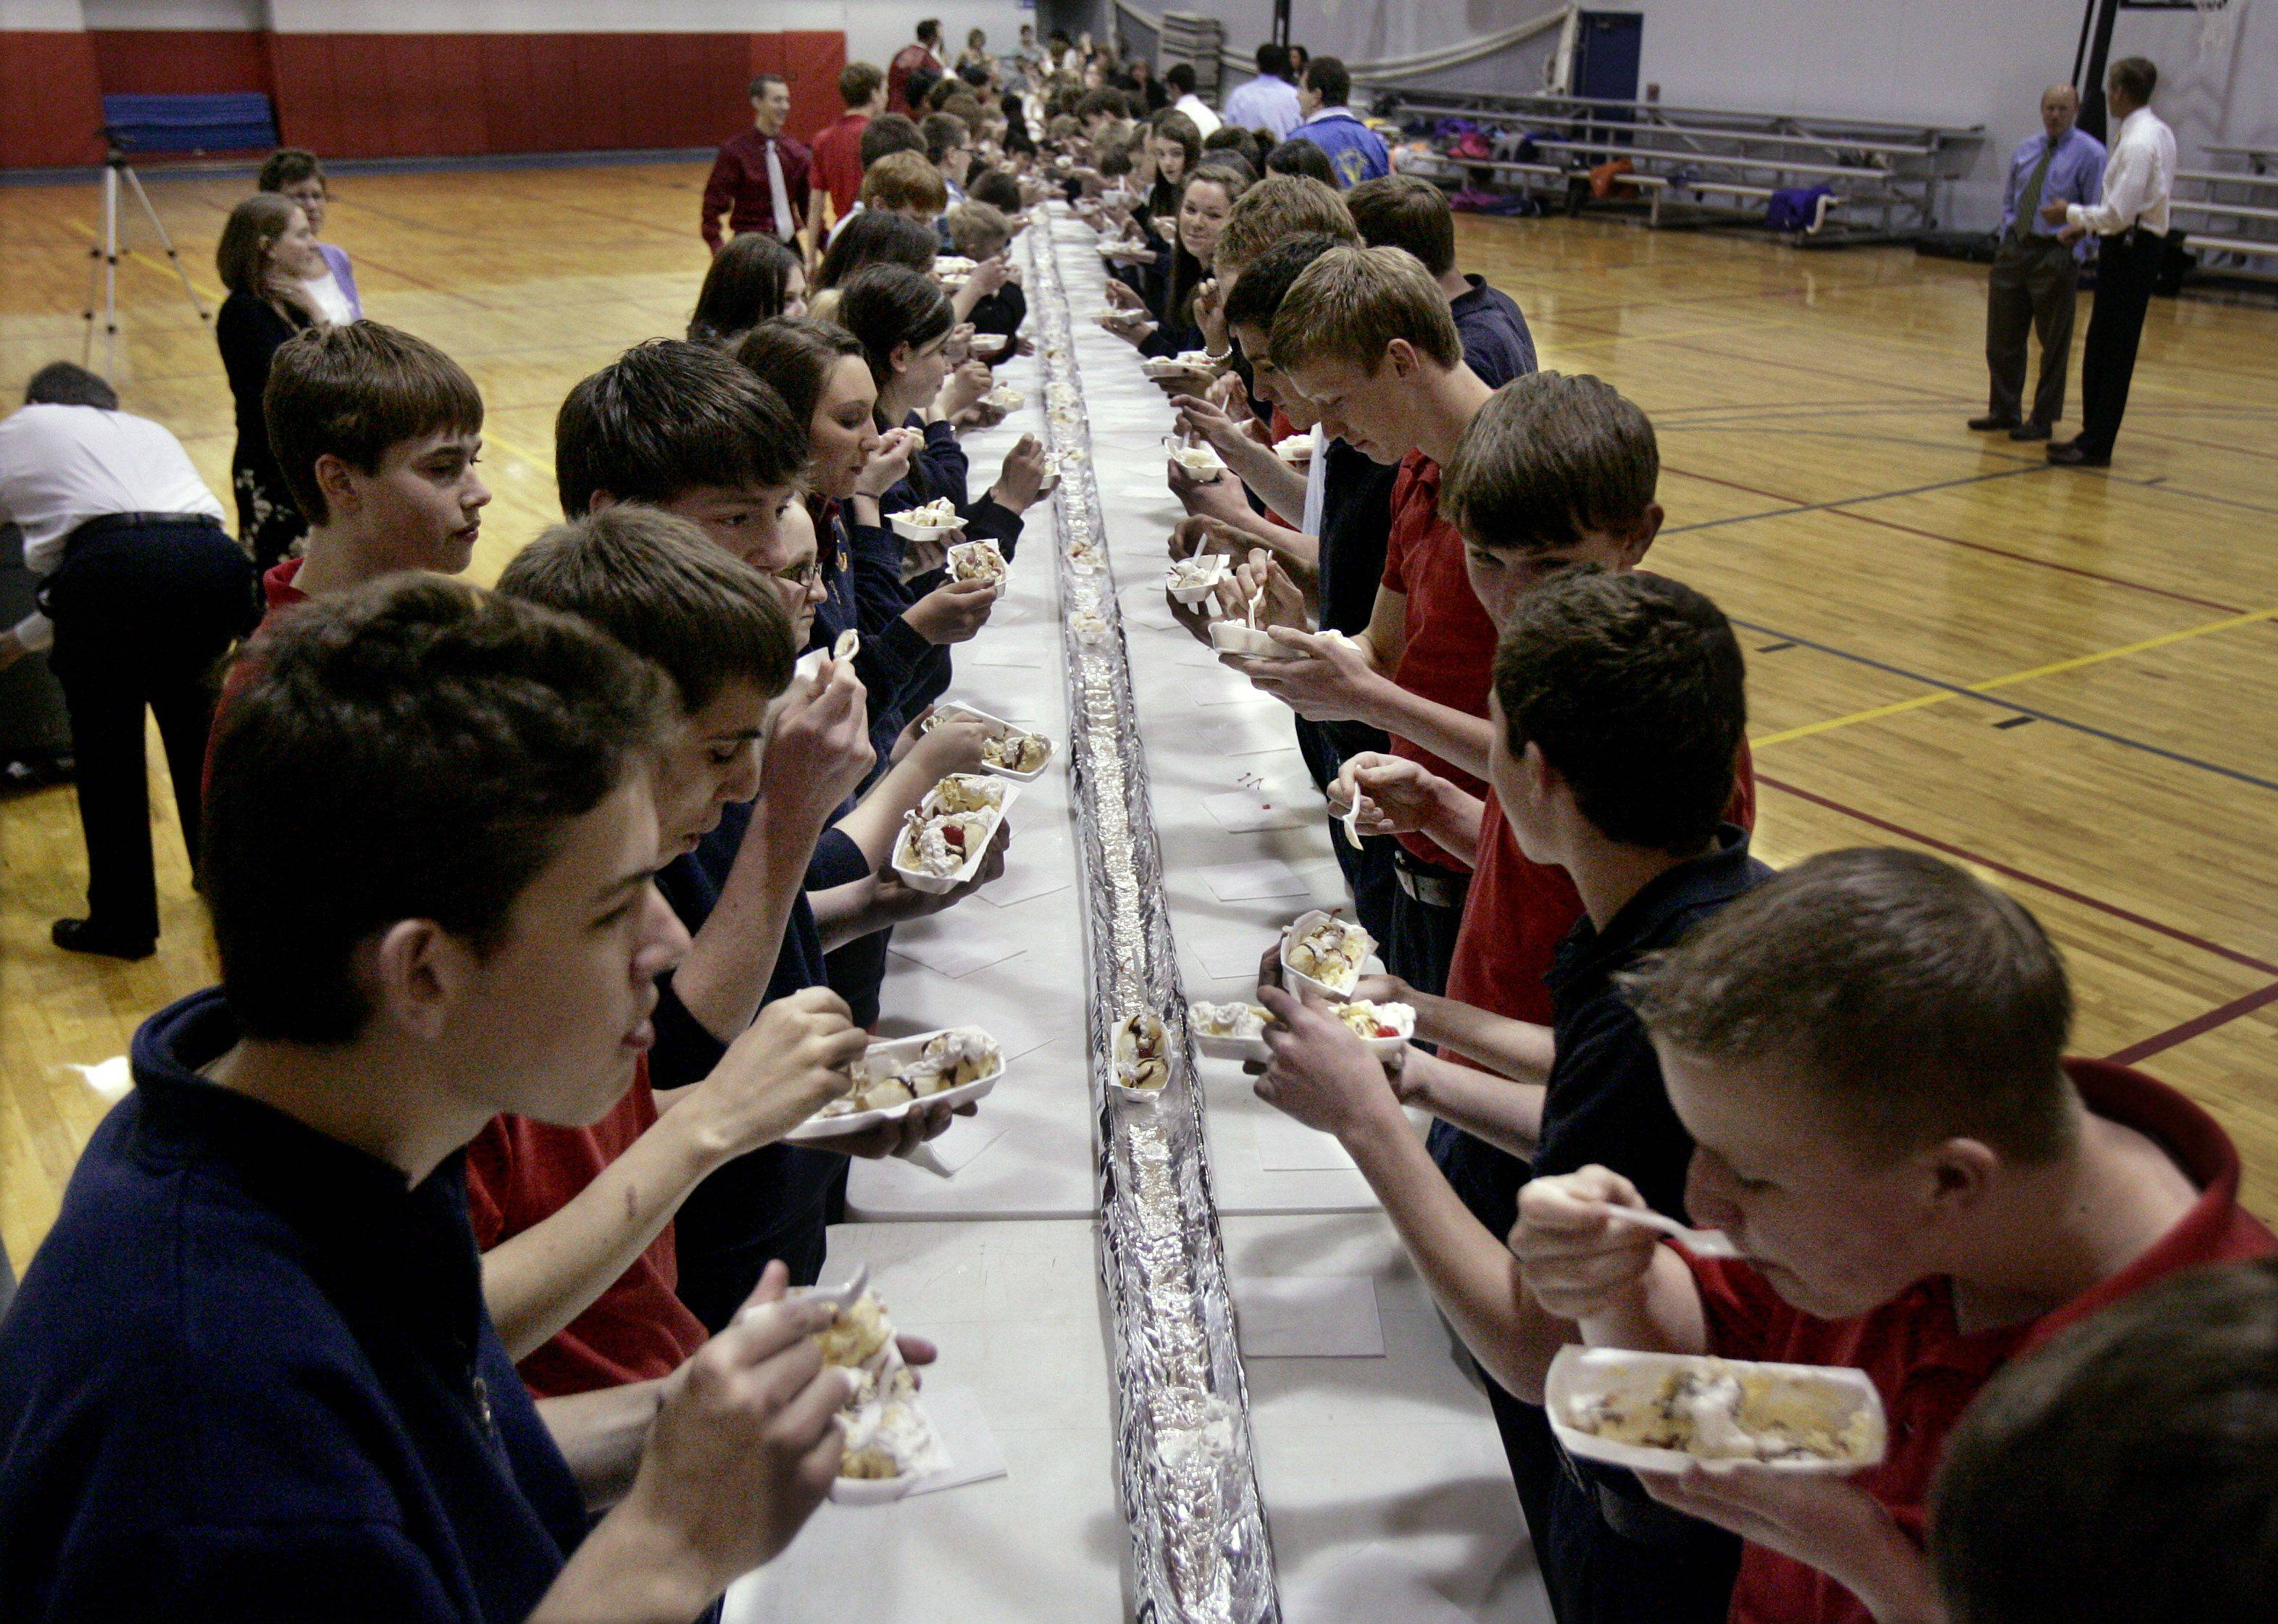 Students eat a 100-foot long banana split Monday at Quentin Road Christian School in Lake Zurich. Menards supplied a 100-foot gutter which acted as the bowl as part of the fundraiser used to purchase science and sports equipment, locker room renovations, books, and field trips.